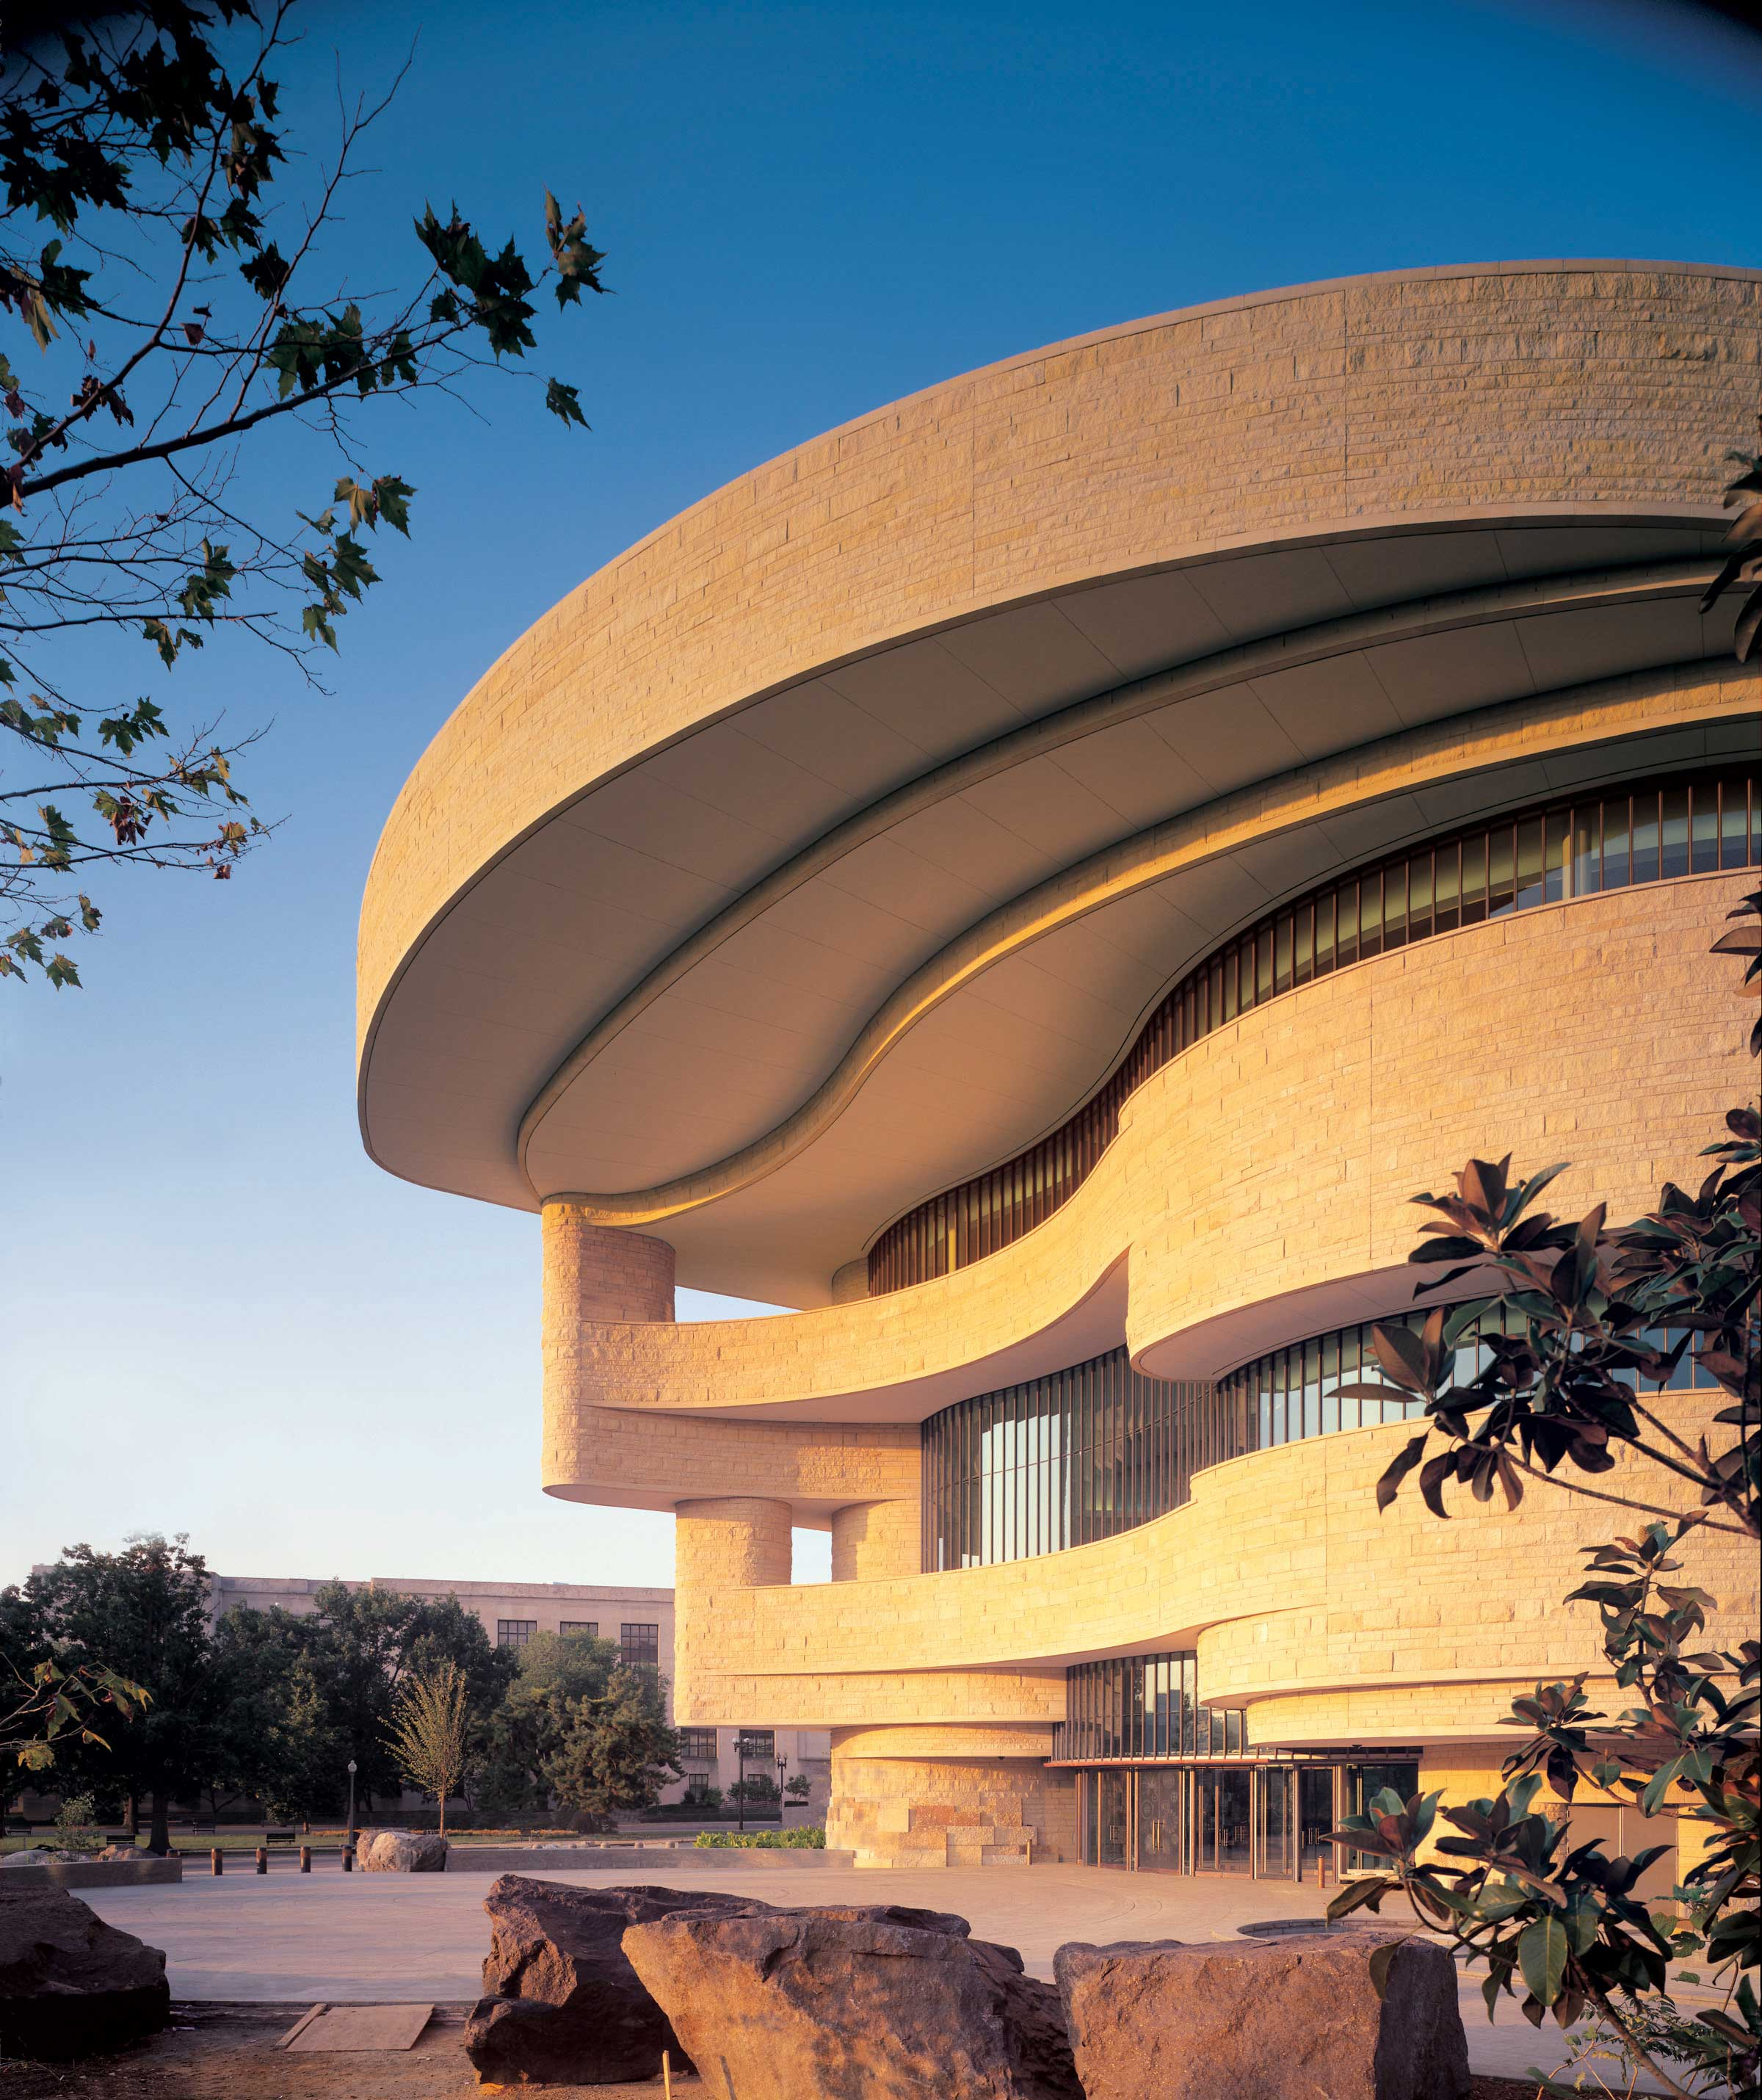 Exterior of National Museum of the American Indian